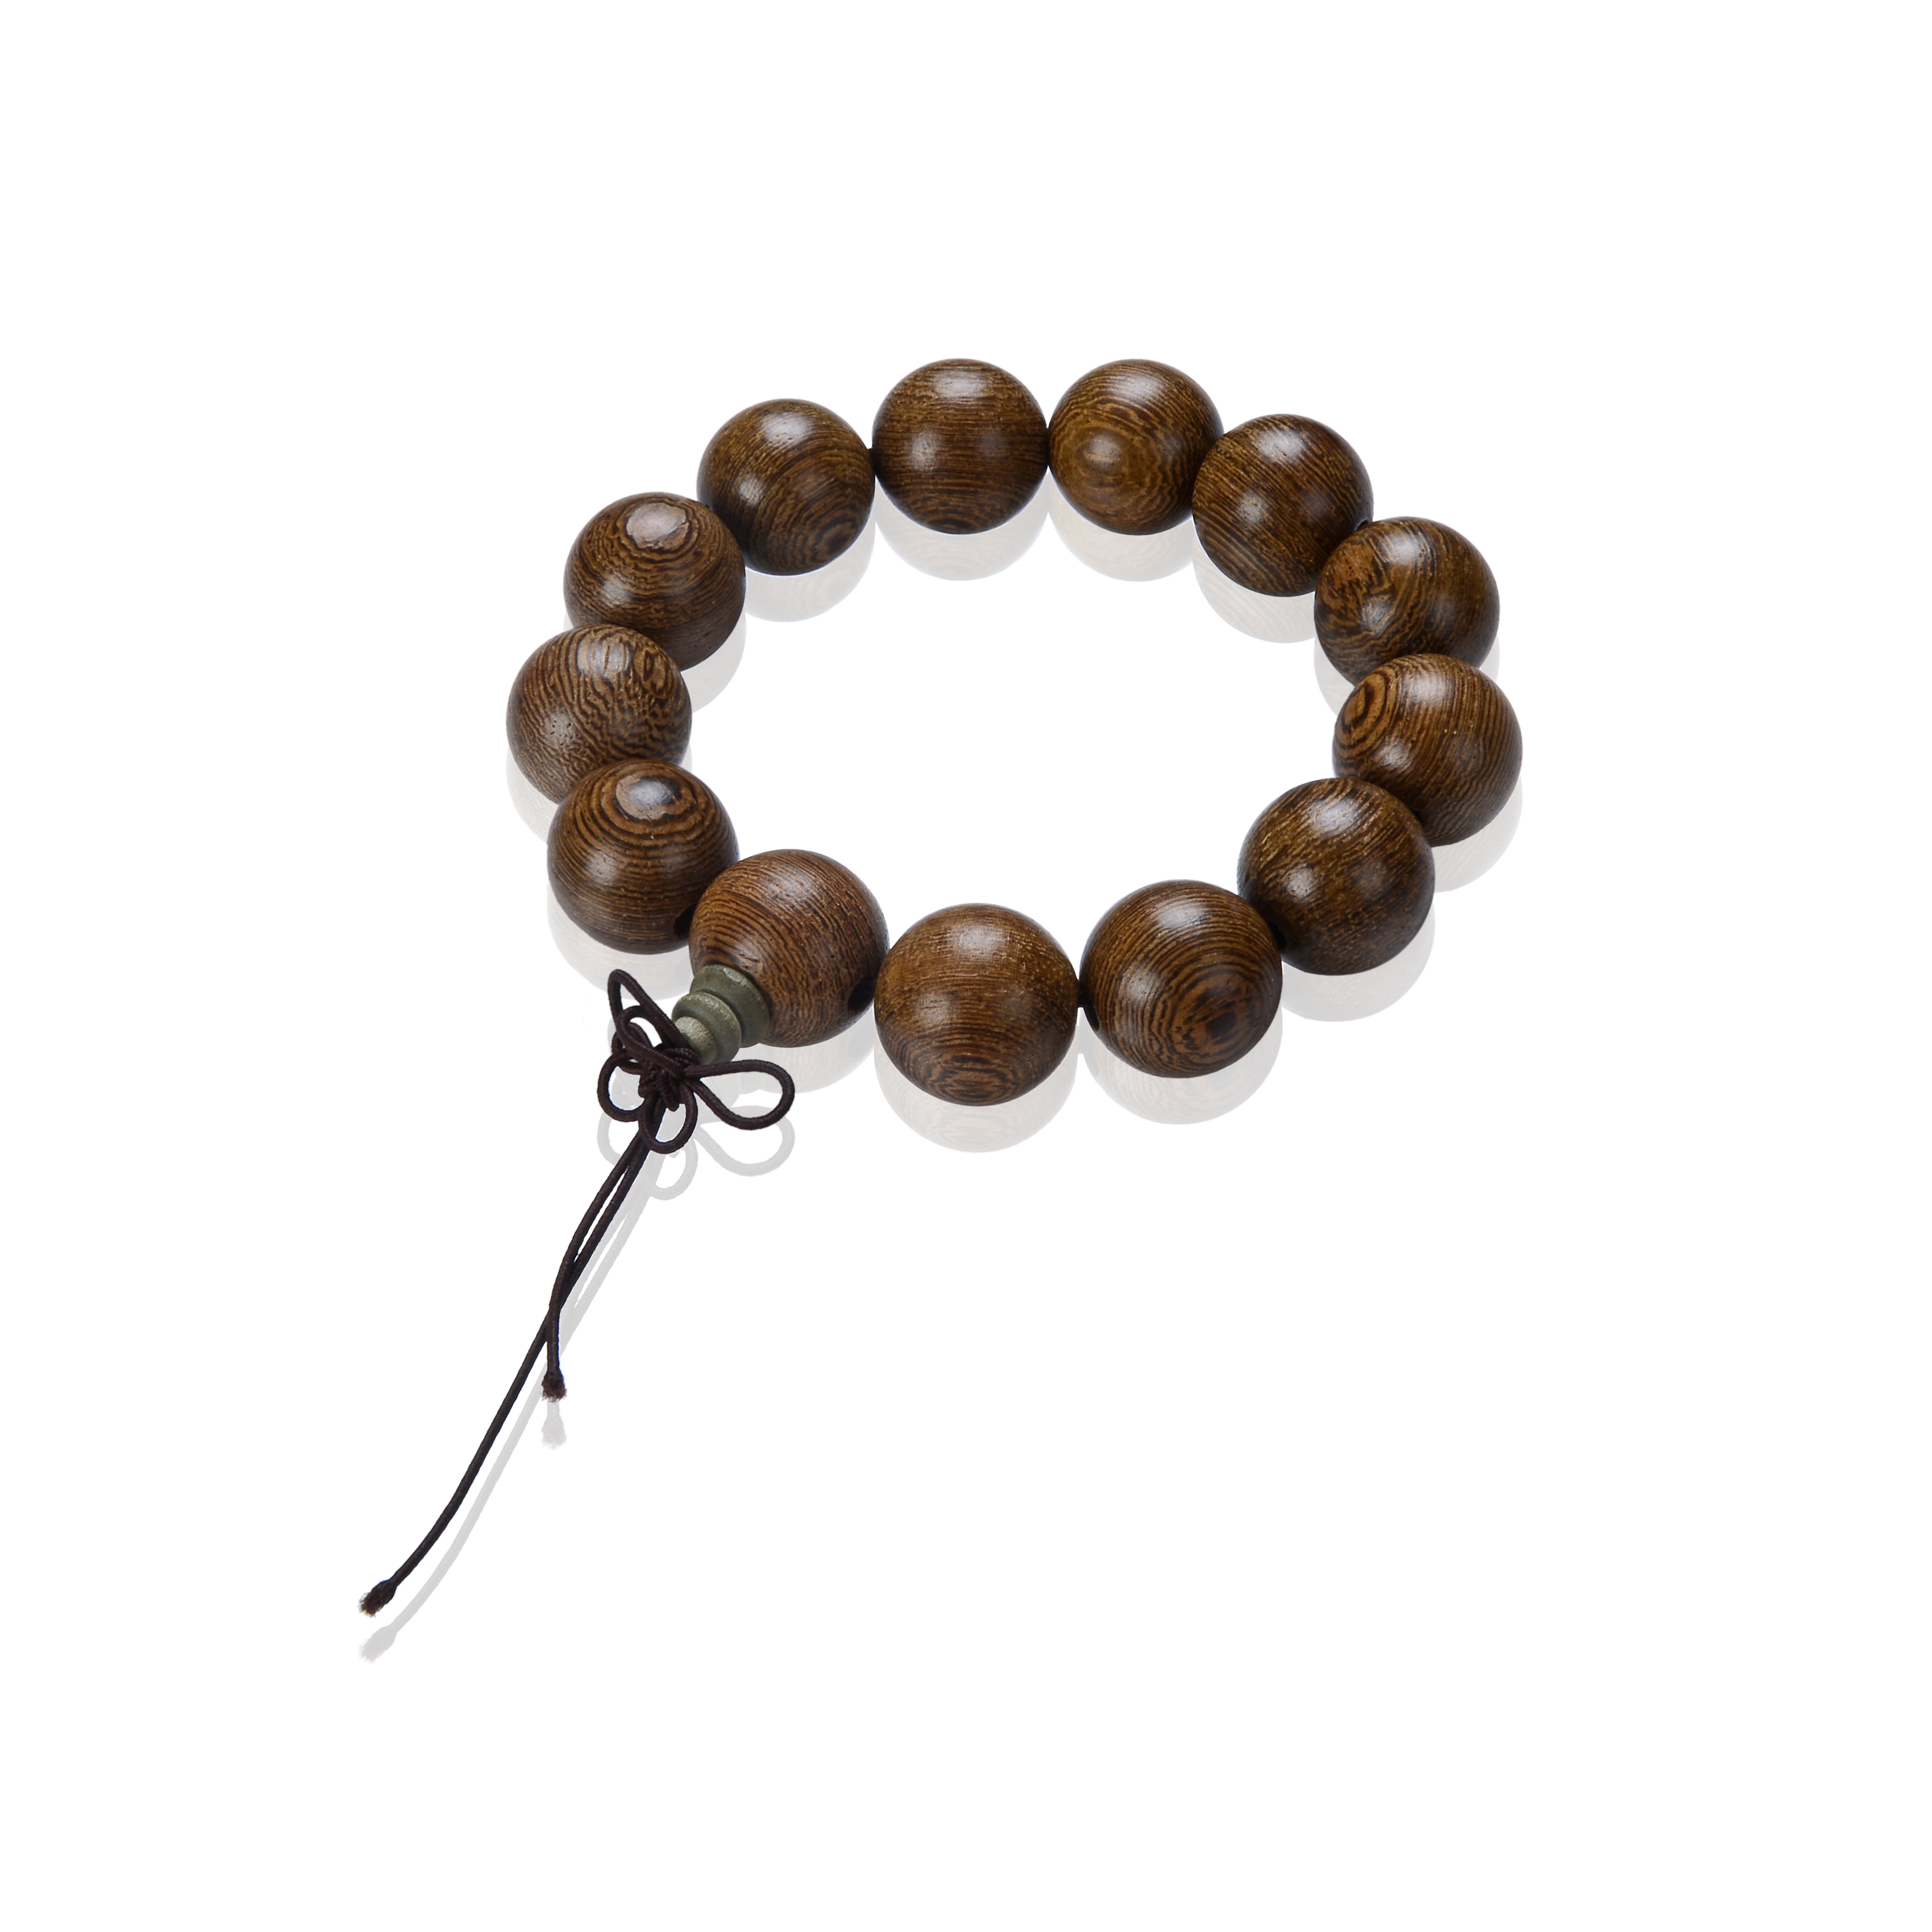 18mm Elastic Sandalwood Buddist Prayer Bead Bracelet  SKU#: br-tx5